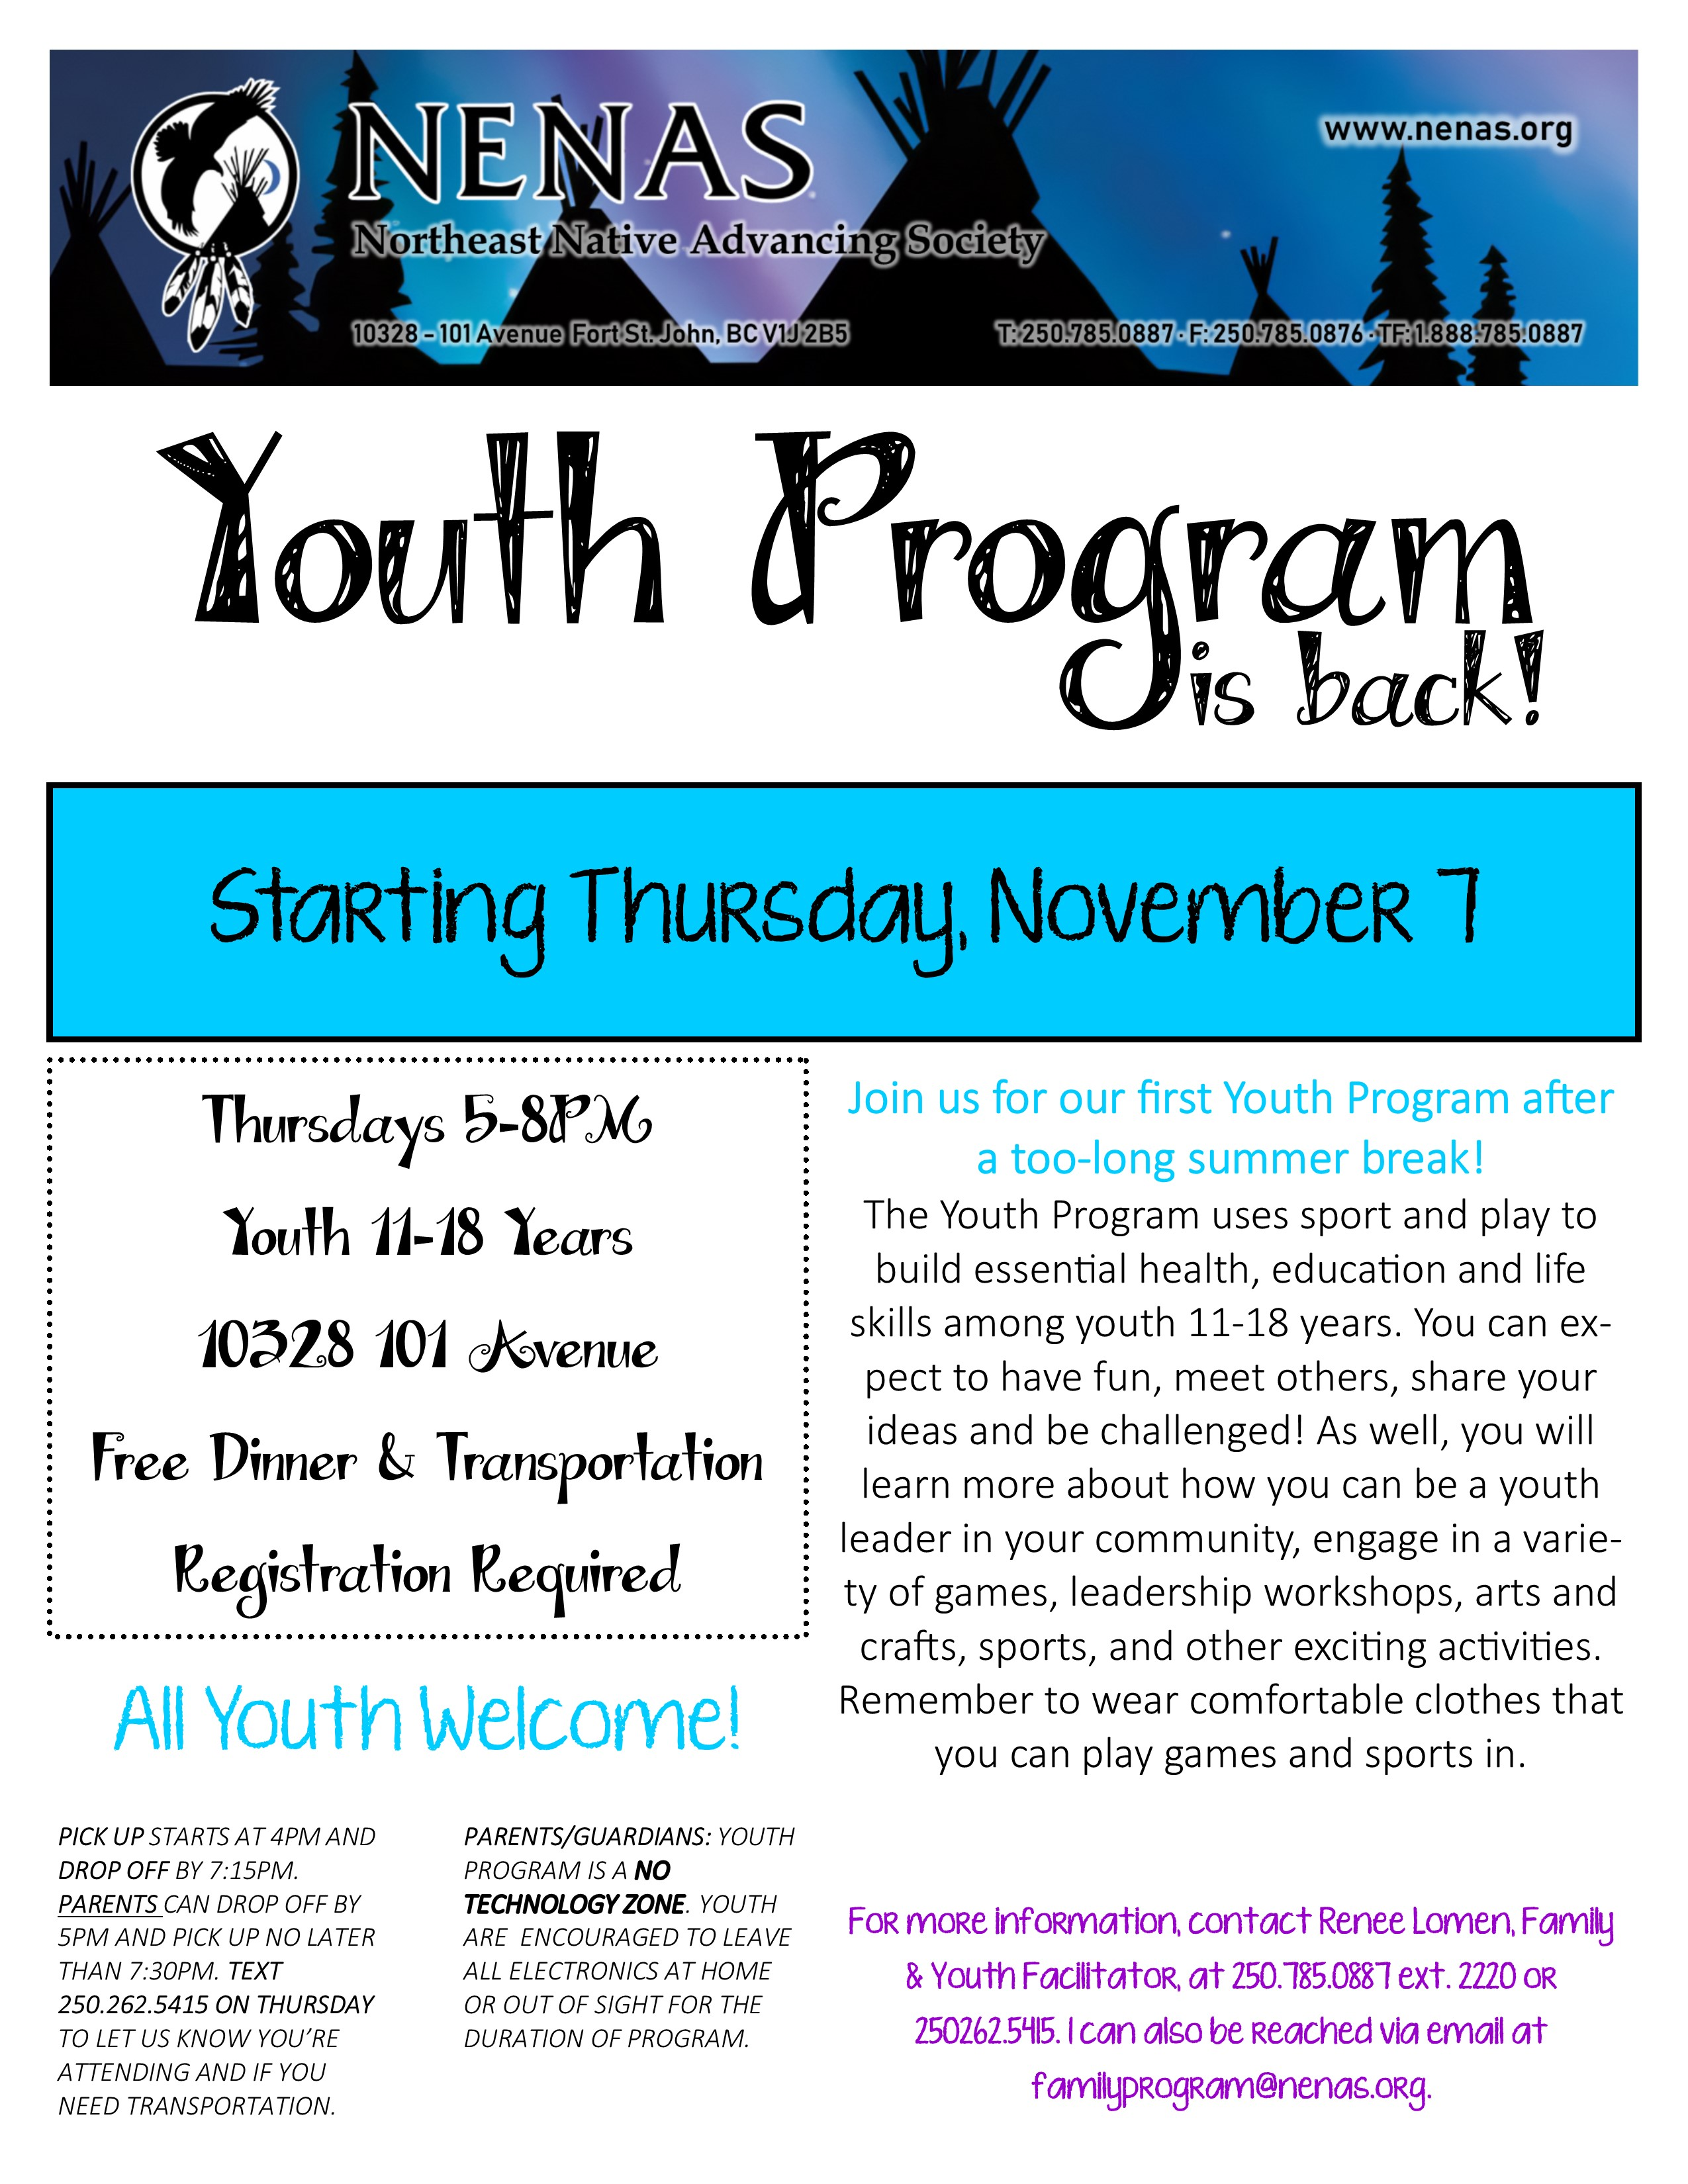 NENAS Youth Program @ Northeast Native Advancing Society